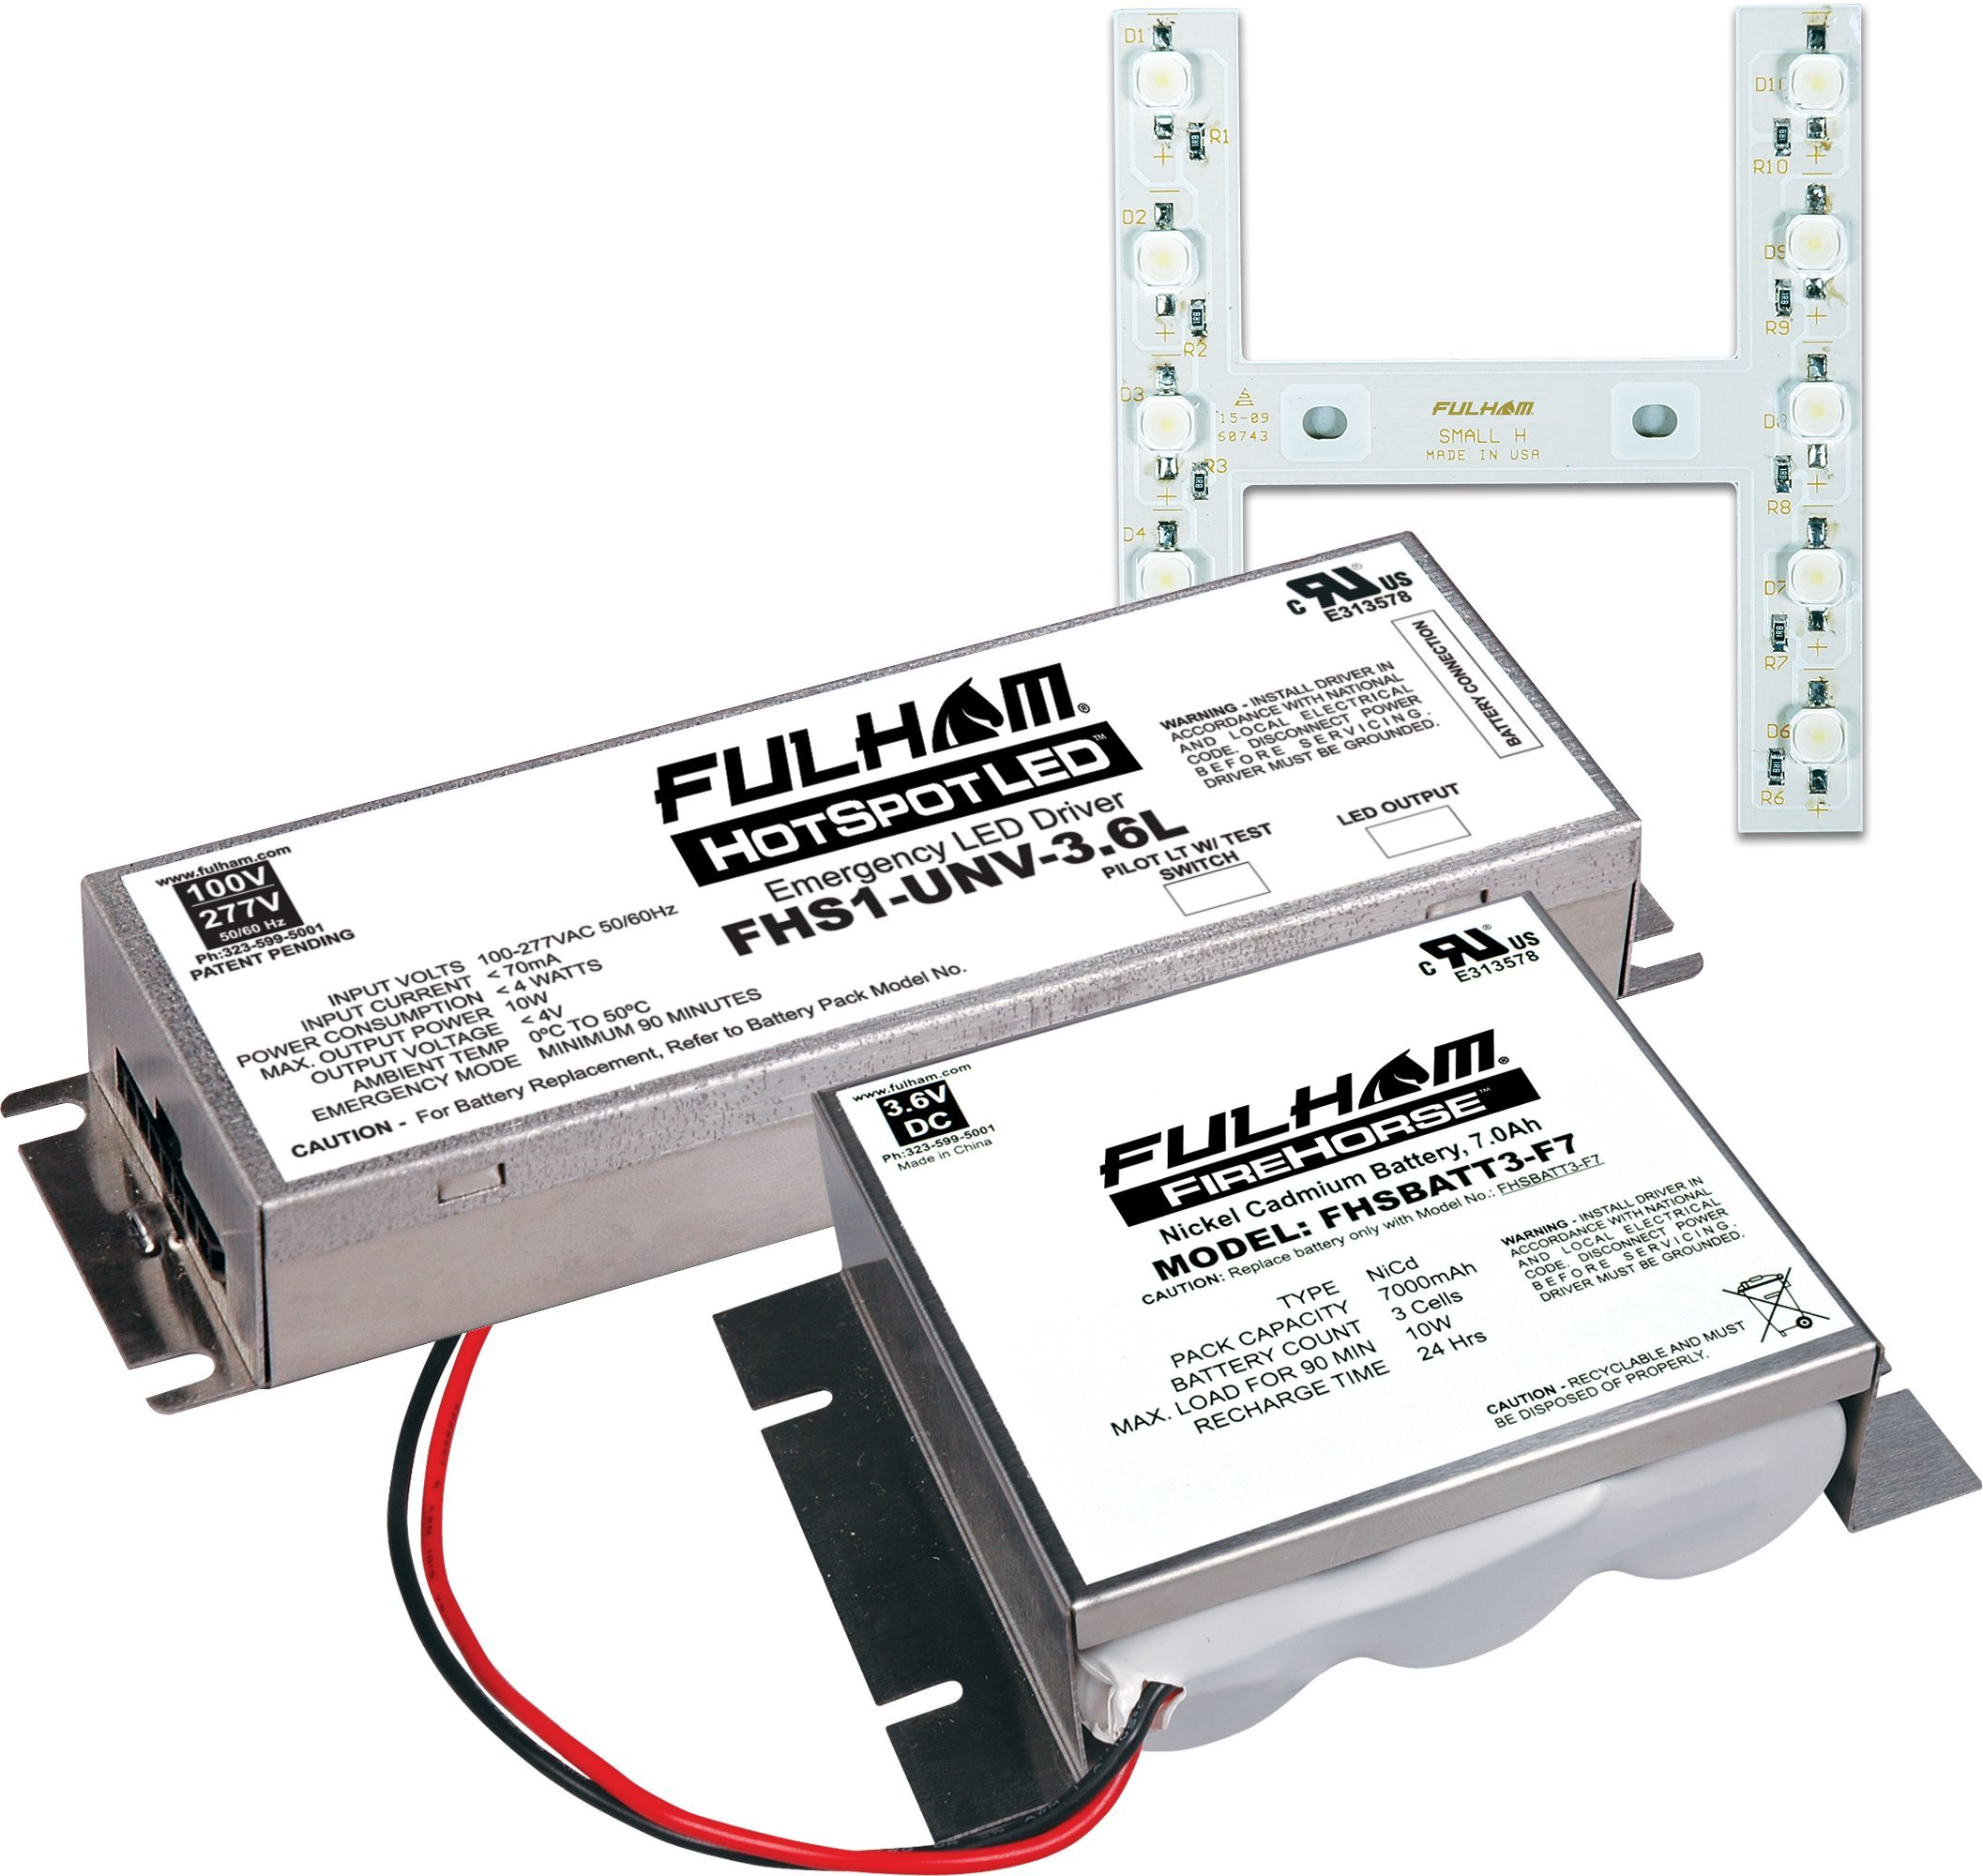 Fulham FHSKITT10SHF LED Emergency Battery Back Up Kit